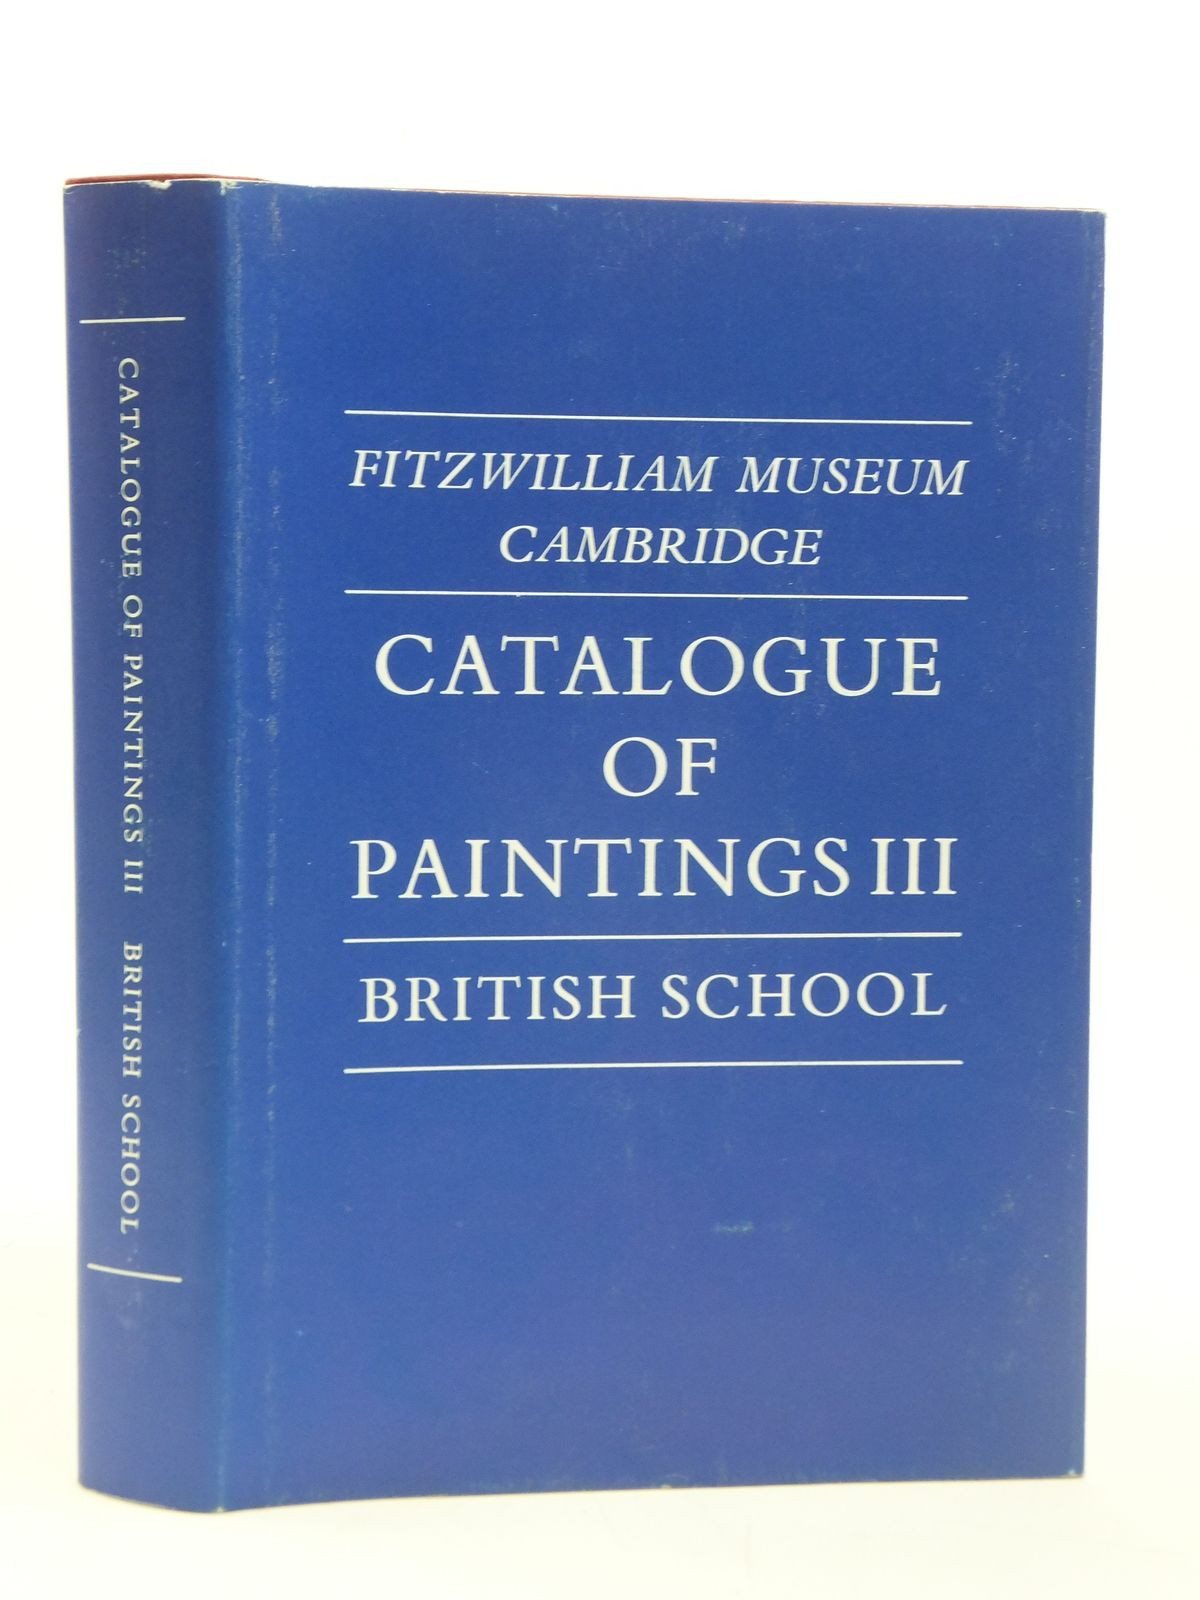 Photo of FITZWILLIAM MUSEUM CAMBRIDGE CATALOGUE OF PAINTINGS VOLUME III written by Goodison, J.W. published by Cambridge University Press (STOCK CODE: 1605077)  for sale by Stella & Rose's Books